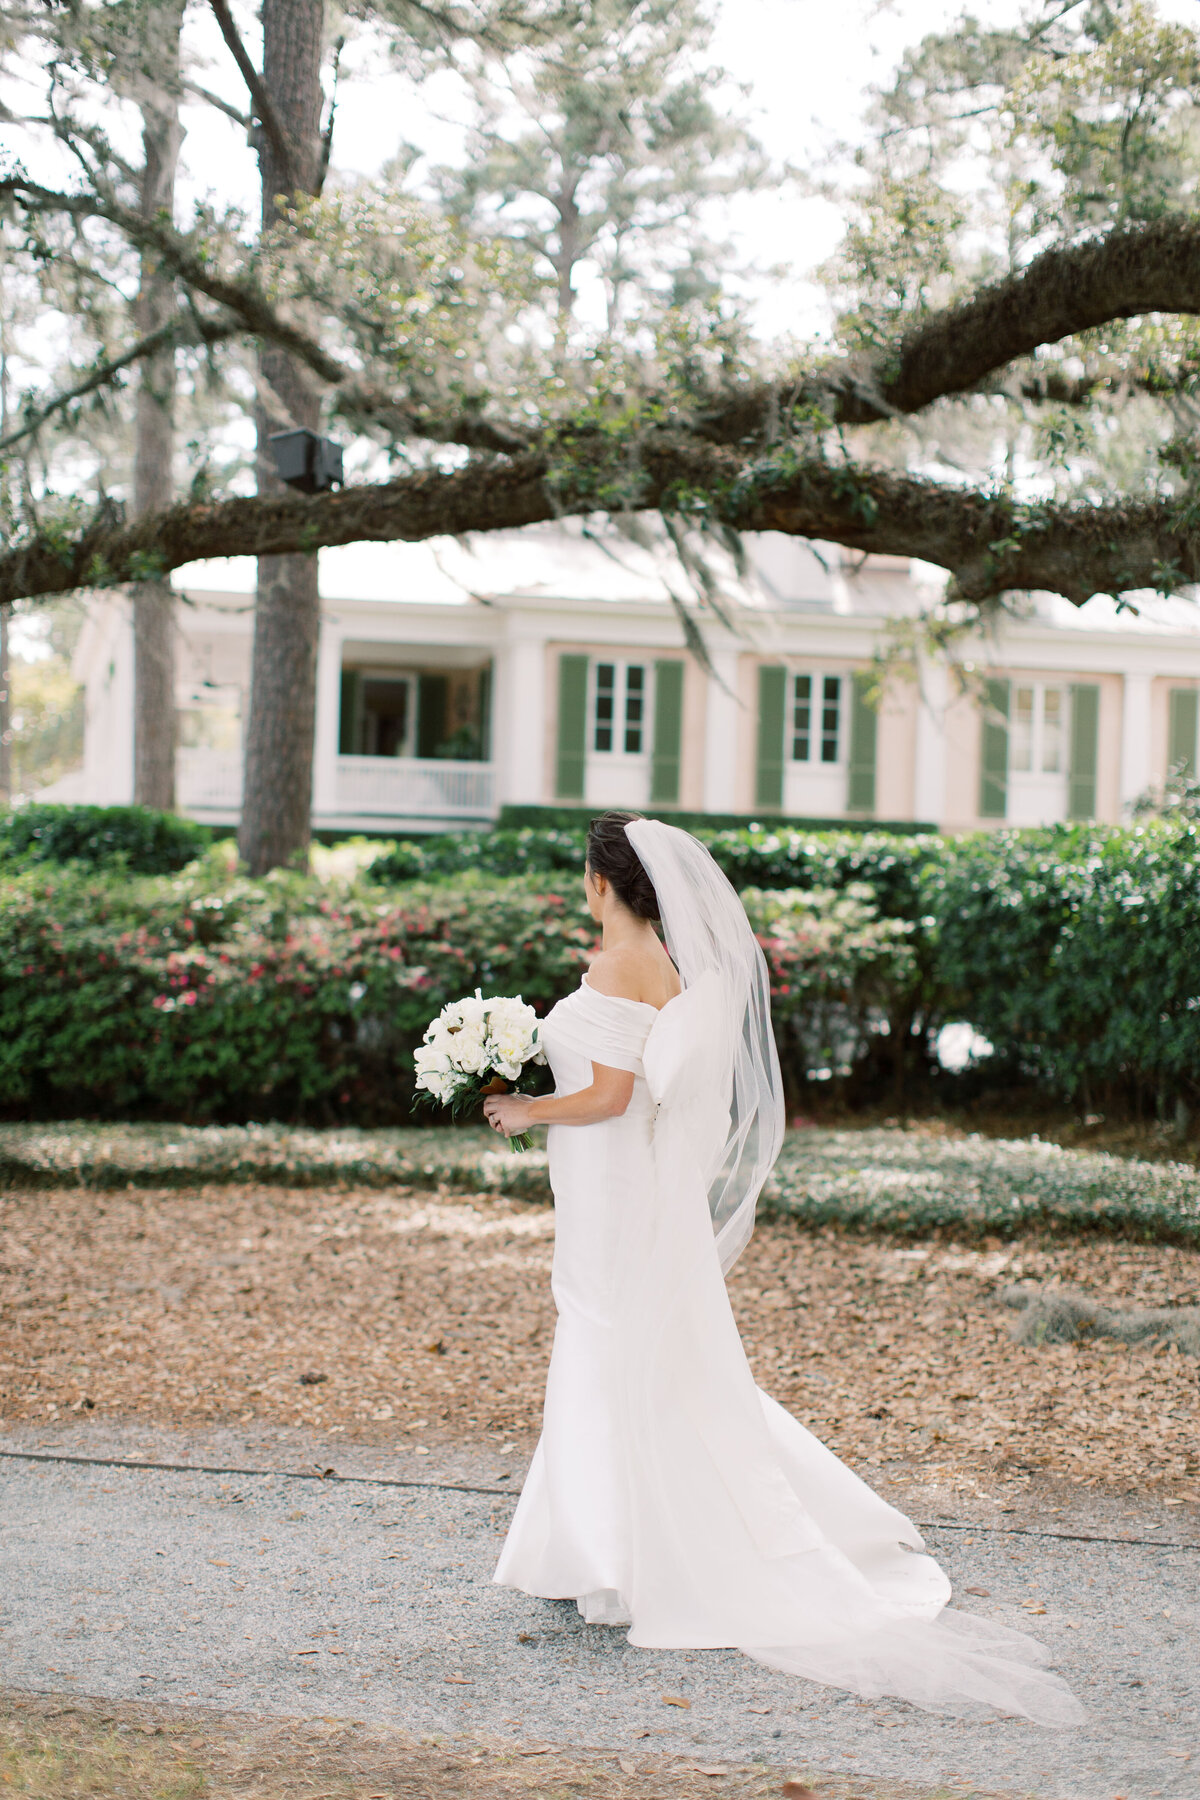 Powell_Oldfield_River_Club_Bluffton_South_Carolina_Beaufort_Savannah_Wedding_Jacksonville_Florida_Devon_Donnahoo_Photography_0186